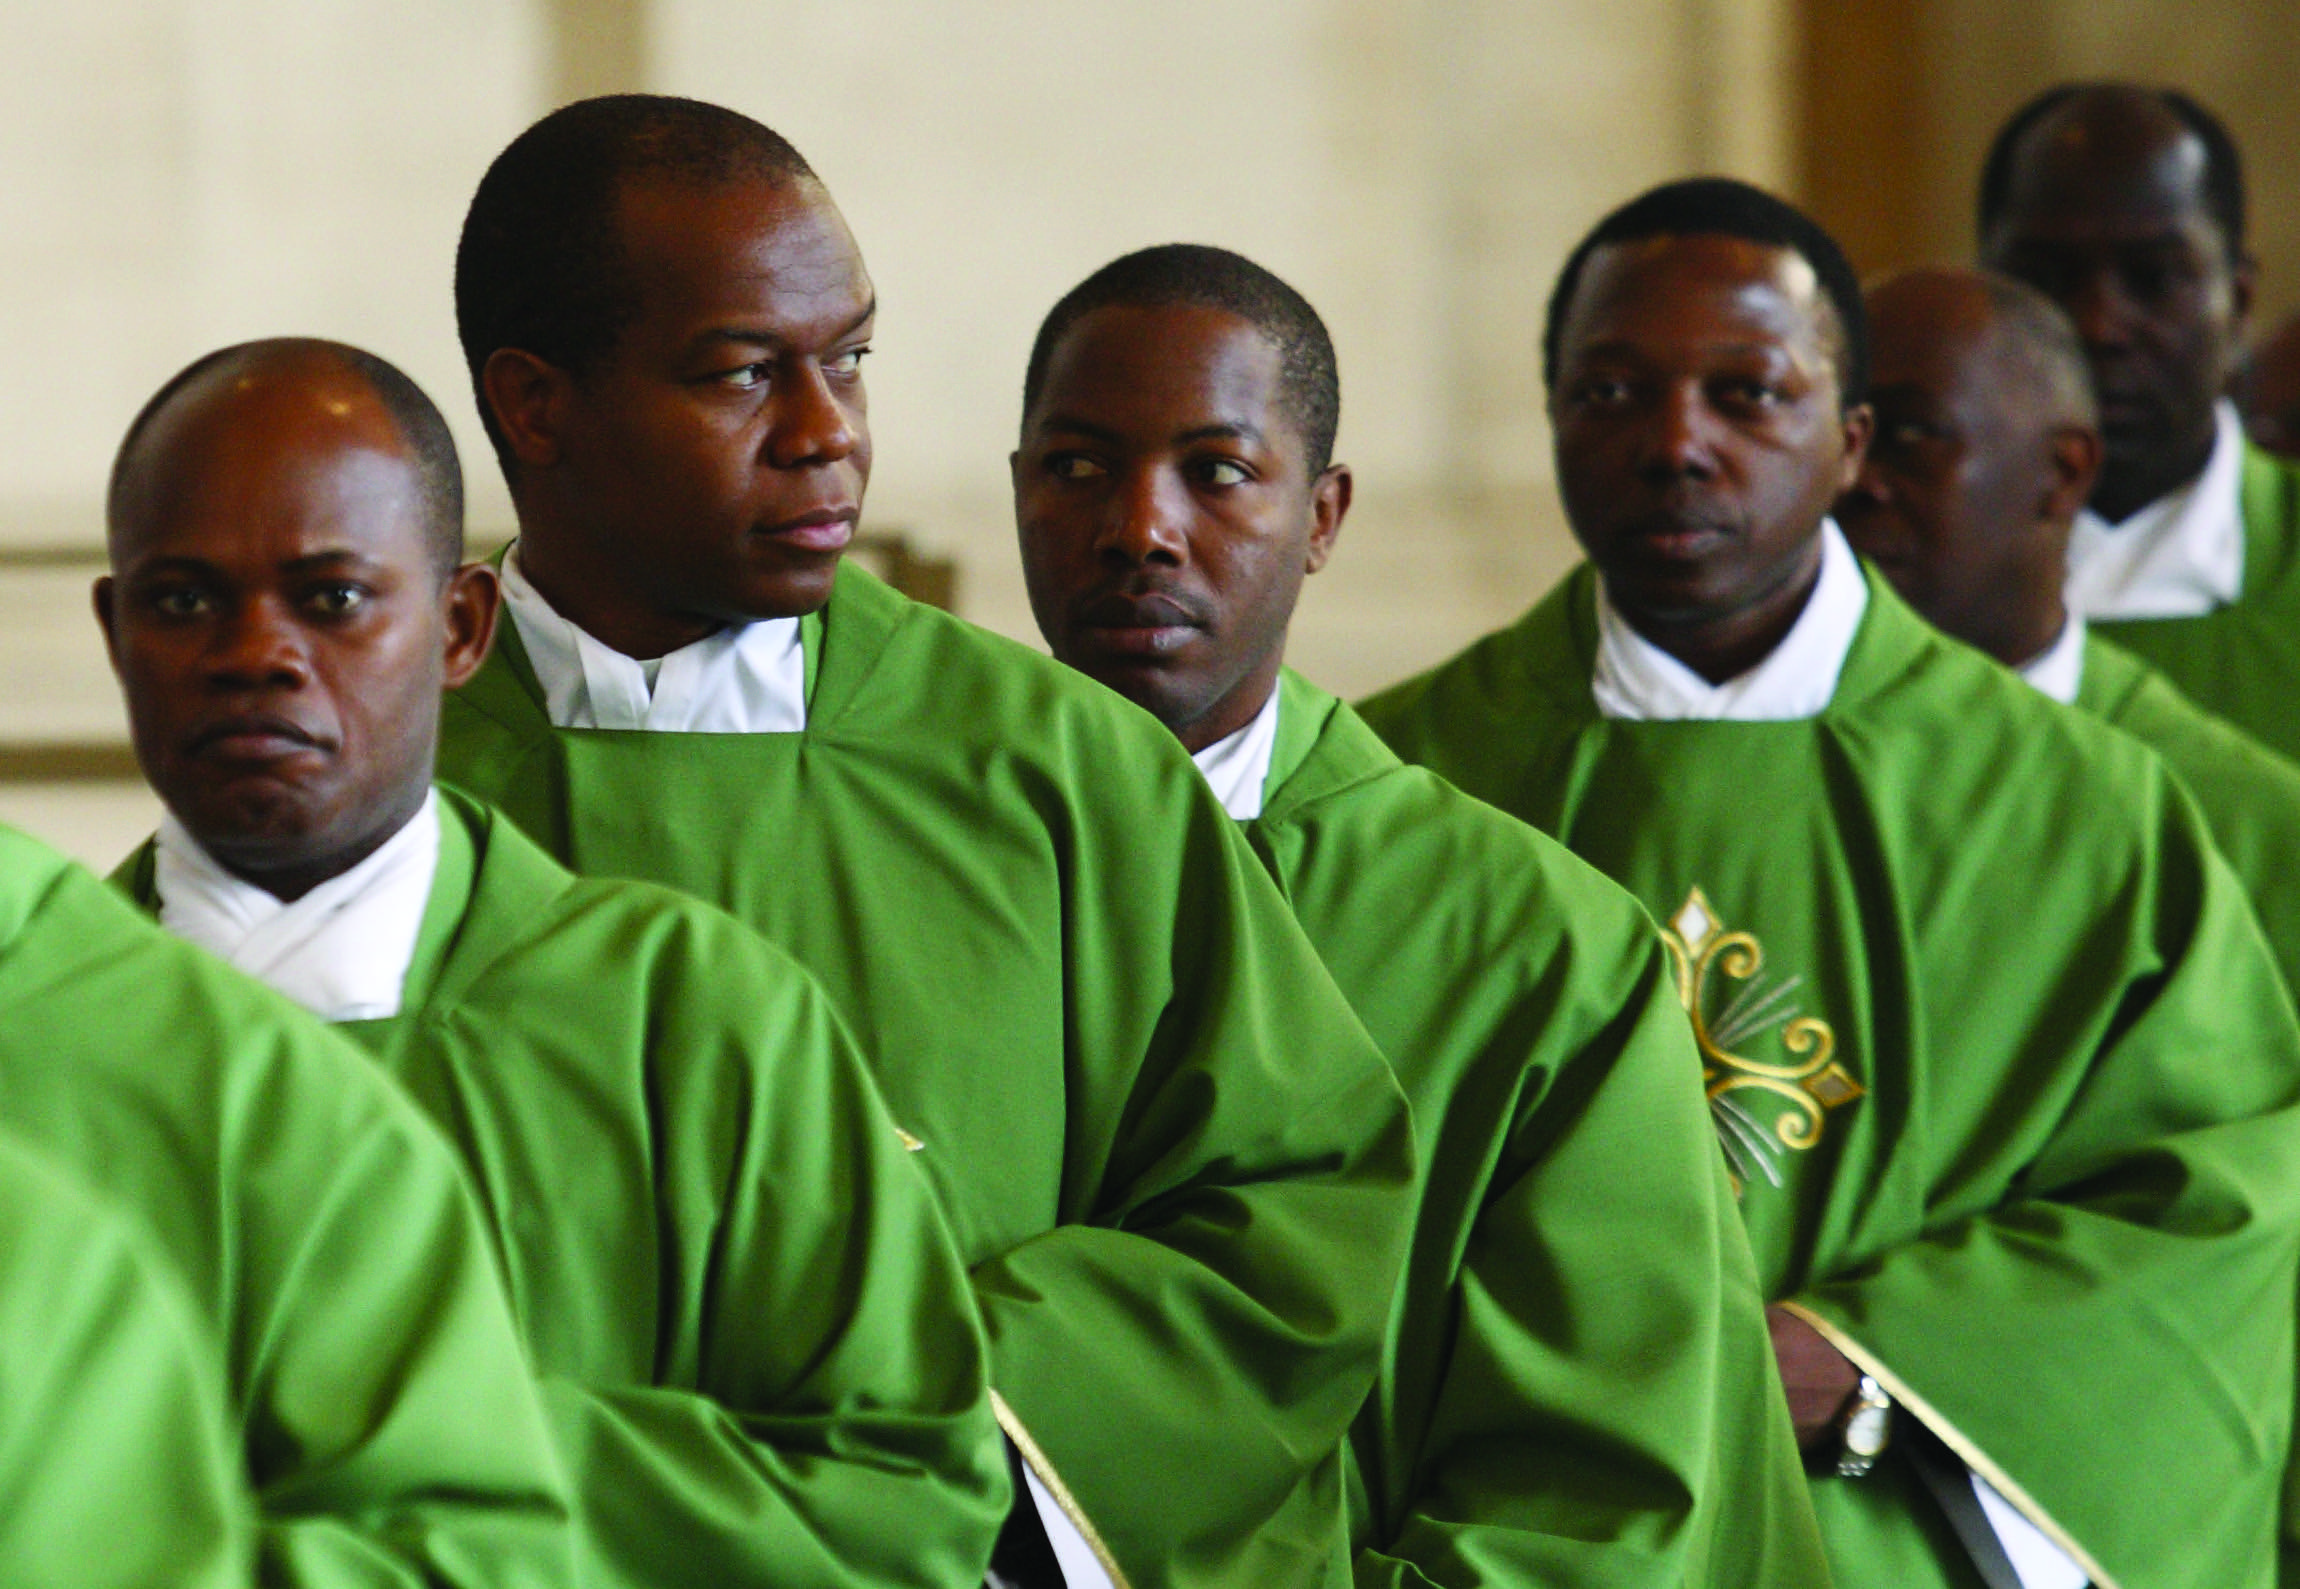 Clergy process at the start of the closing Mass of the Synod of Bishops for Africa in St. Peter's Basilica at the Vatican Oct. 25. (CNS photo/Paul Haring) (Oct. 26, 2009) See SYNOD-CLOSE Oct. 26, 2009.